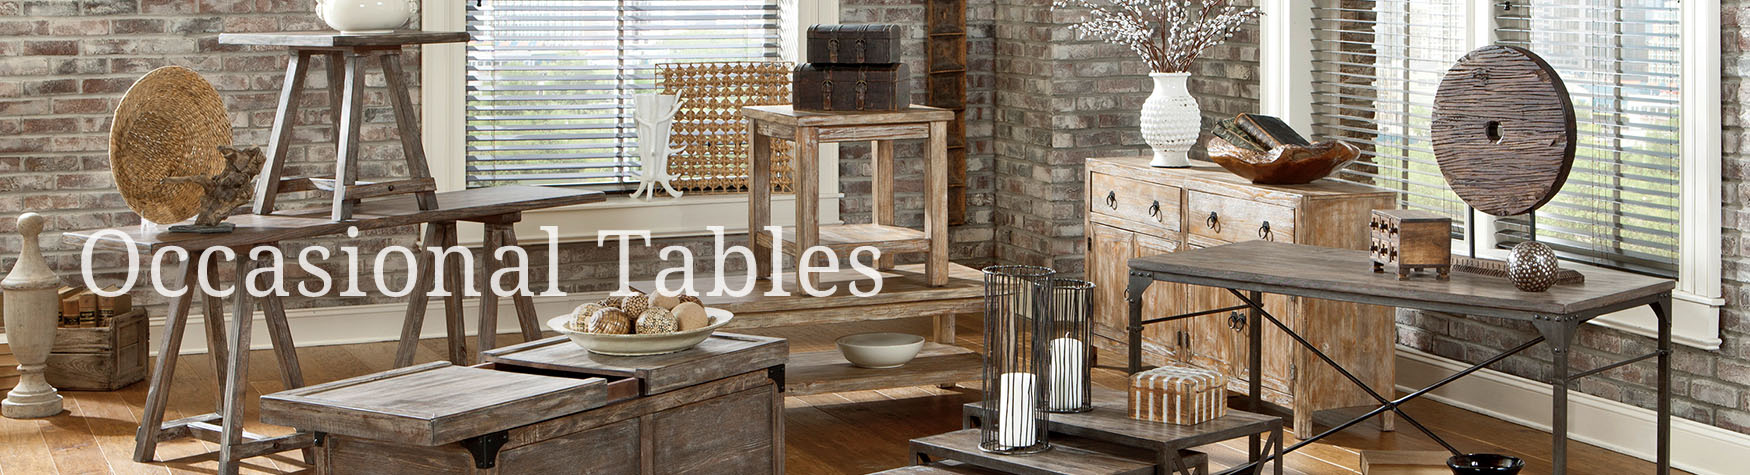 occasional-tables-banner